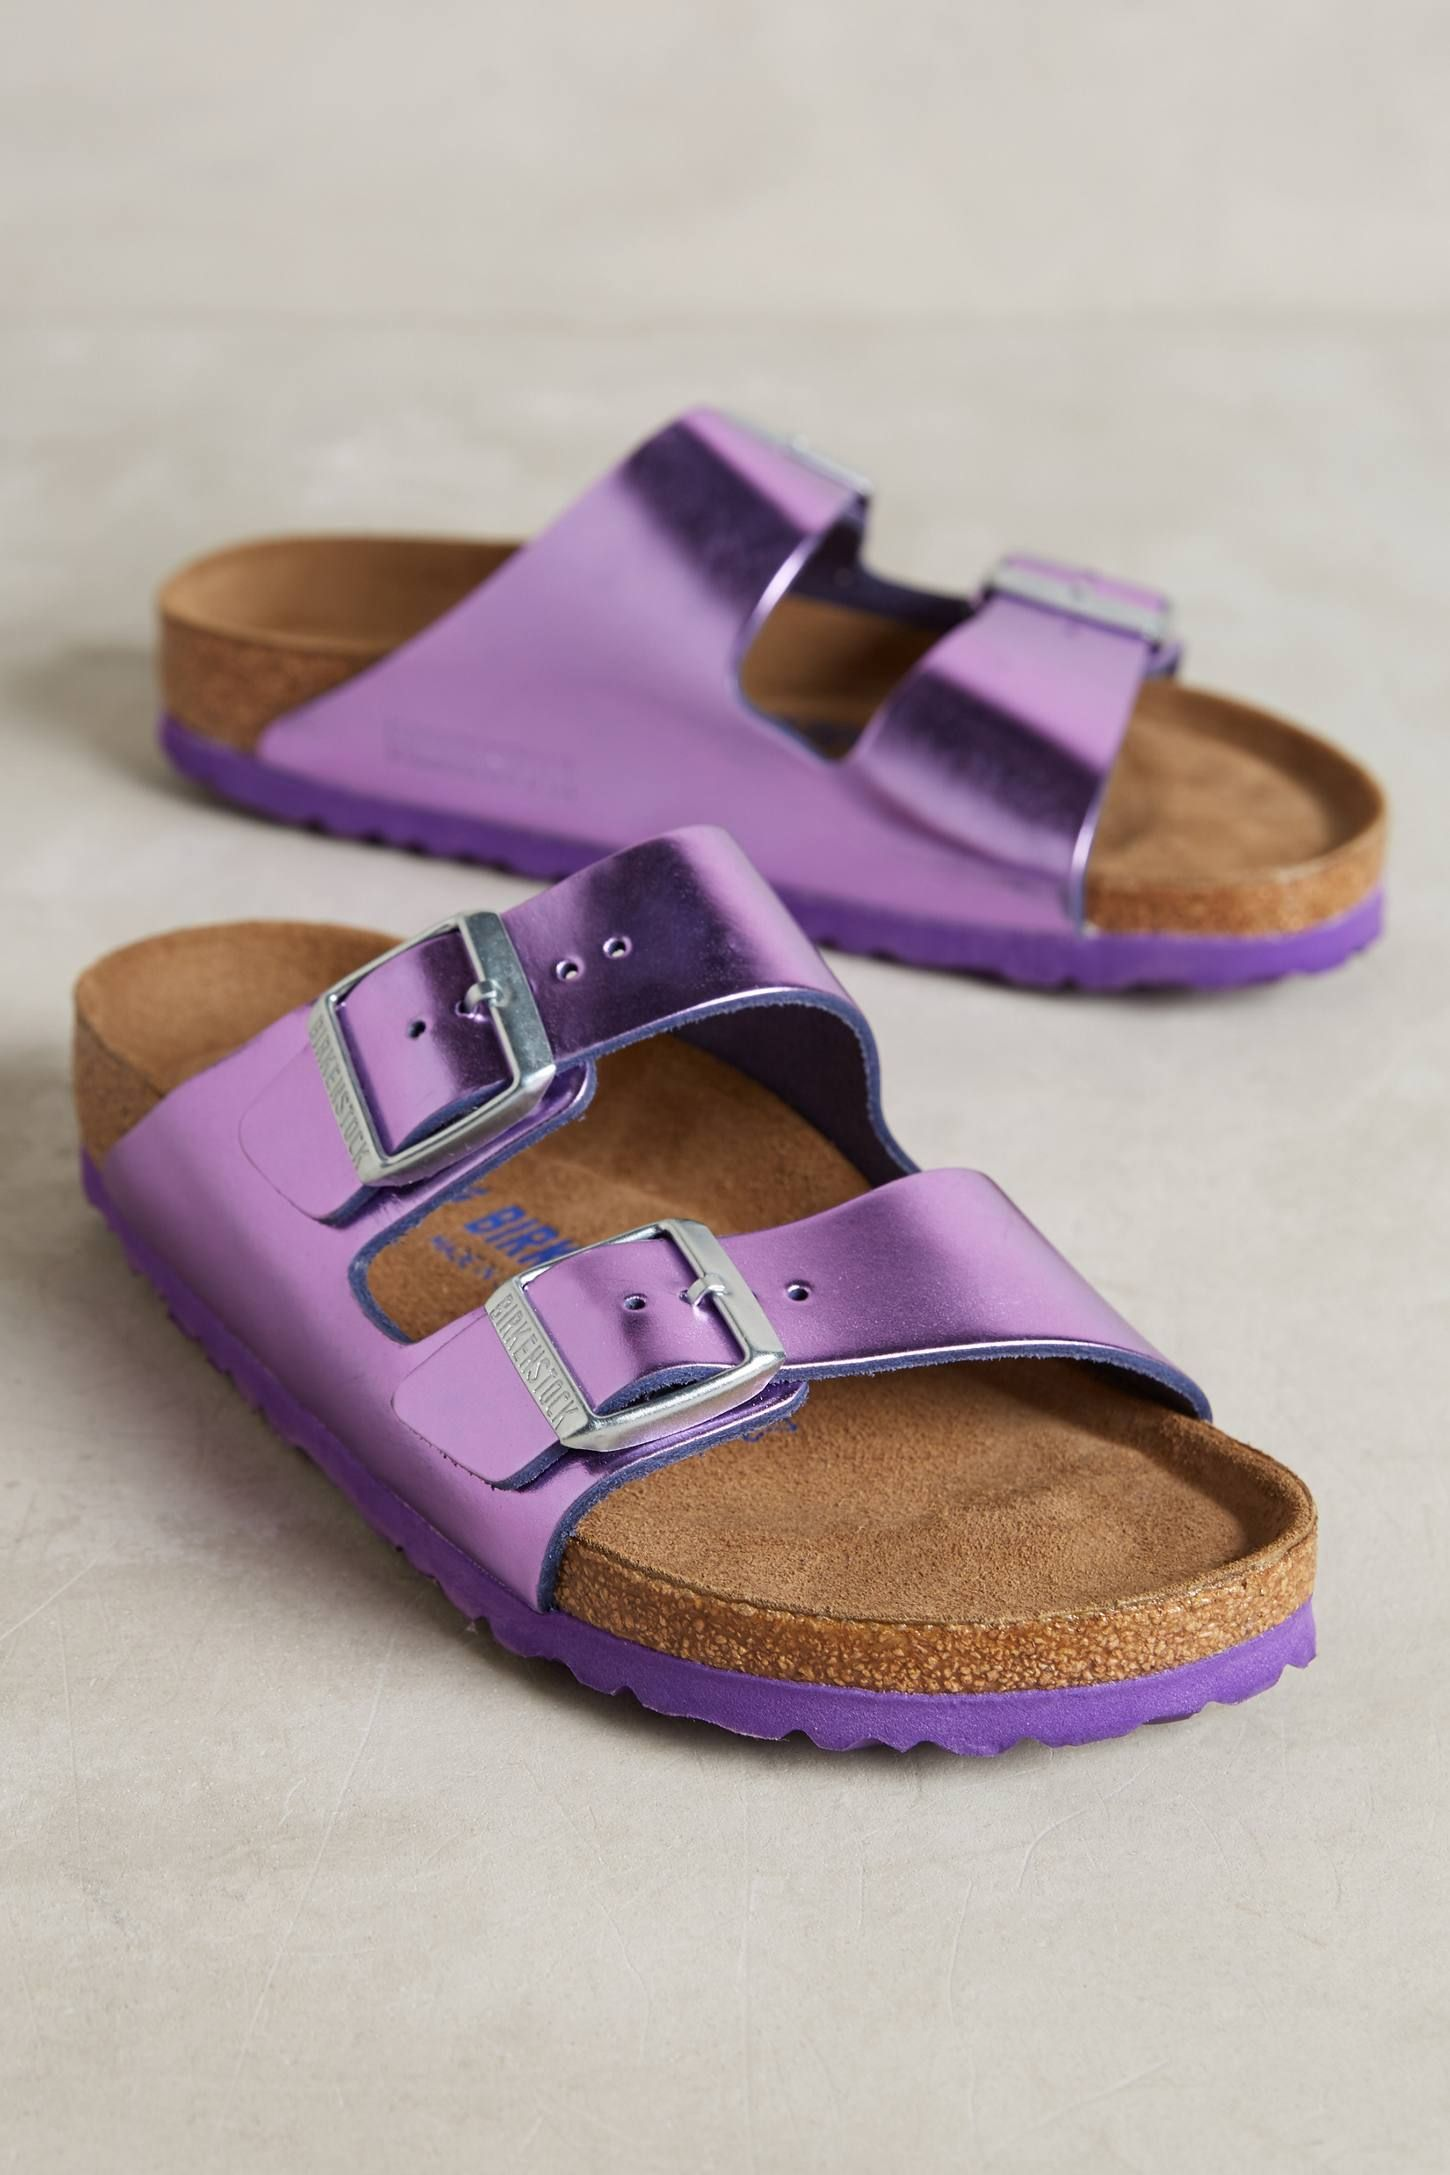 ec286d539d0 Shop the Birkenstock Metallic Arizona Sandals and more Anthropologie at  Anthropologie today. Read customer reviews